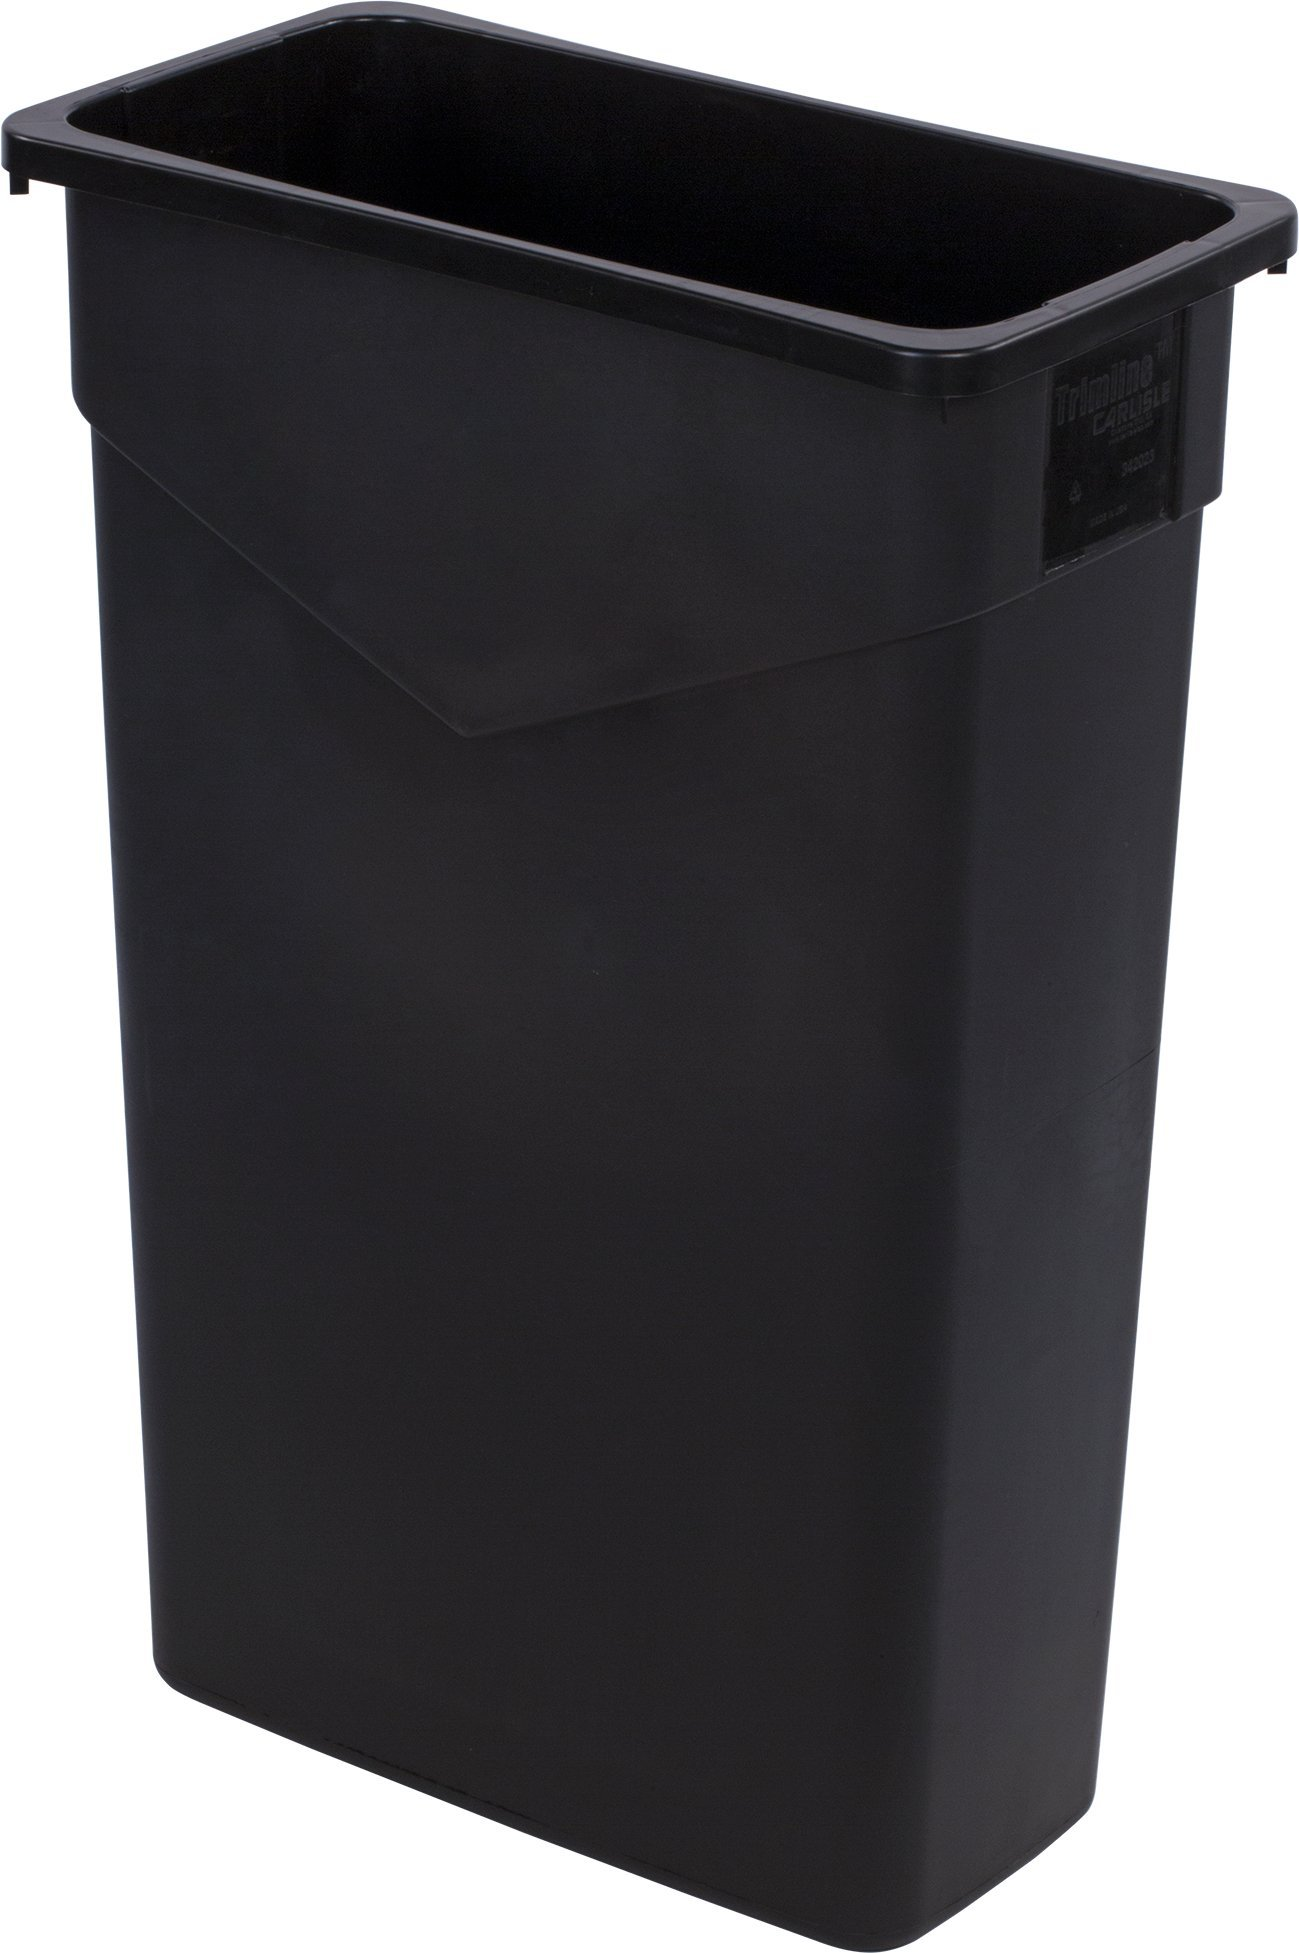 Carlisle 34202303 TrimLine Rectangle Waste Container Trash Can Only, 23 Gallon, Black